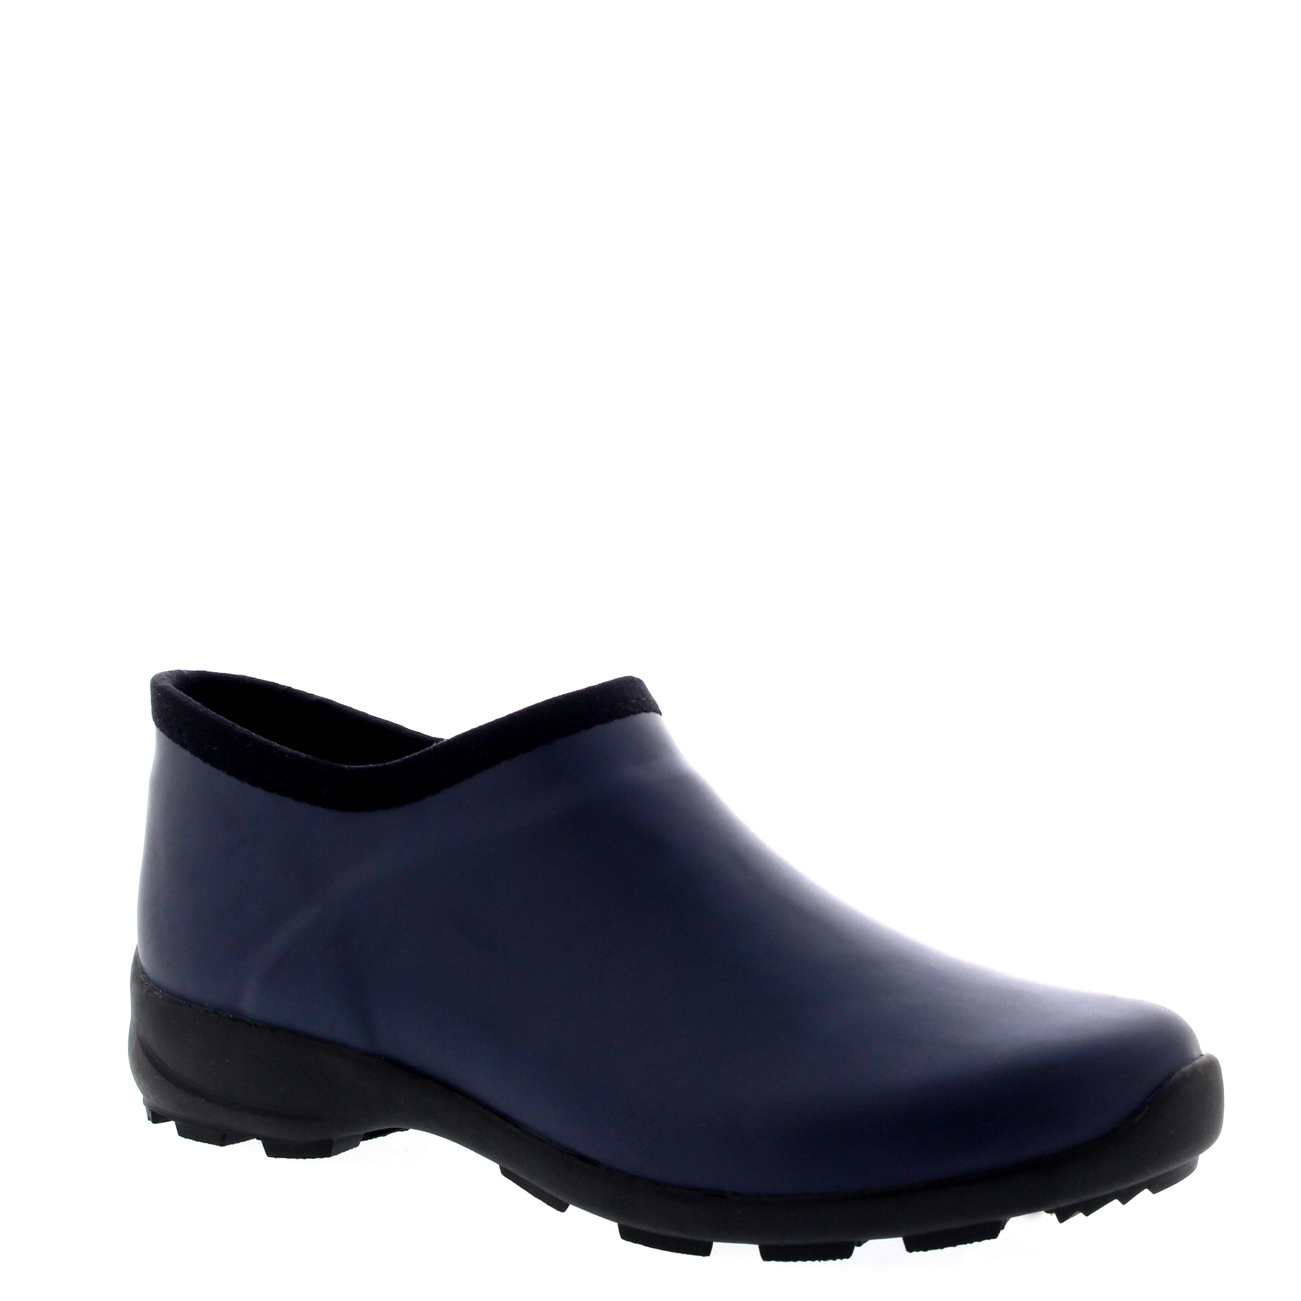 womens rubber welly shoes snow waterproof winter